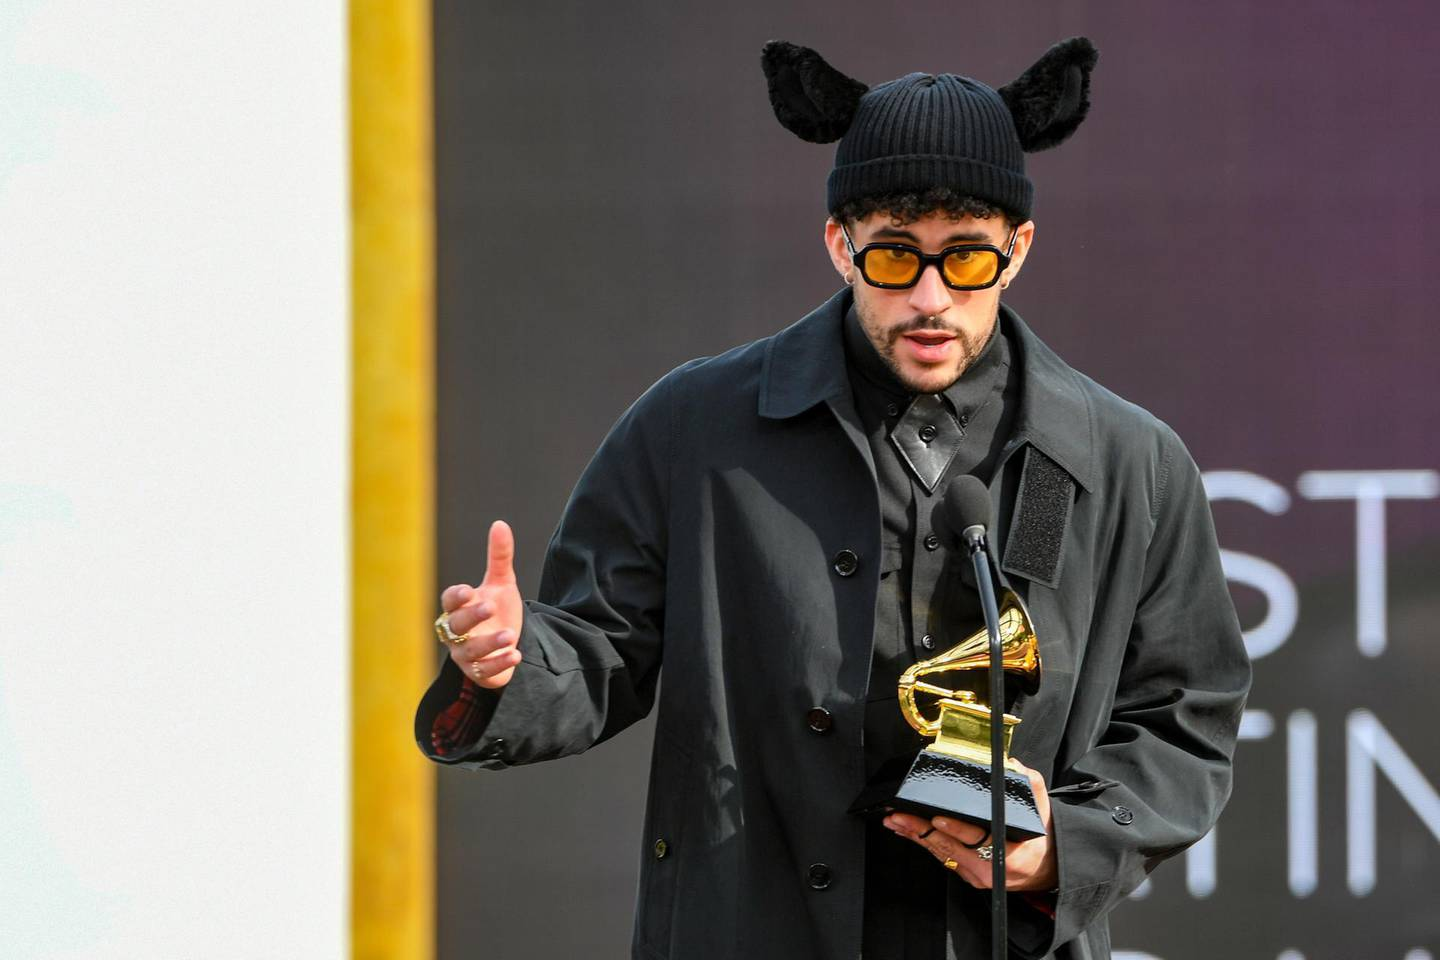 epa09075351 A handout photo made available by The Recording Academy shows Bad Bunny accepting the Grammy for Best Latin Pop or Urban Album for 'YHLQMDLG' onstage during the 63rd Annual Grammy Awards ceremony at the Los Angeles Convention Center, in Los Angeles, California, USA, 14 March 2021.  EPA/Kevin Winter / HANDOUT ATTENTION EDITORS: IMAGE TO BE USED ONLY IN RELATION TO THE STATED EVENT / HANDOUT EDITORIAL USE ONLY/NO SALES/NO ARCHIVES